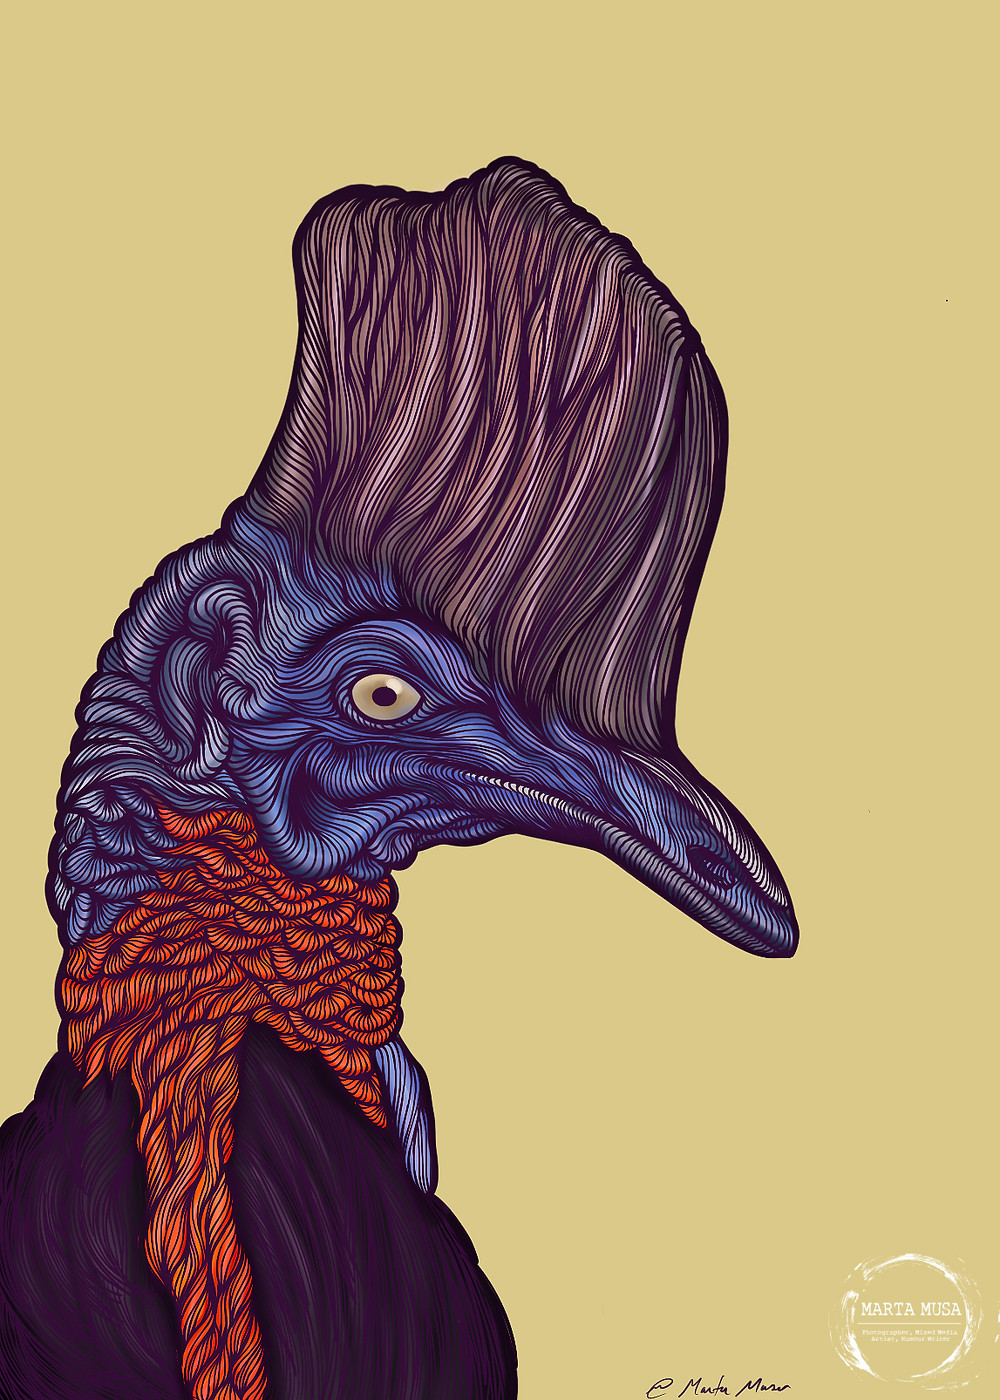 Contour drawing of a Cassowary in profile drawn against a yellow background.  The crest of the cassowary is a pale liliac, his face is a bluish/purple and his neck folds a red to orange gradient